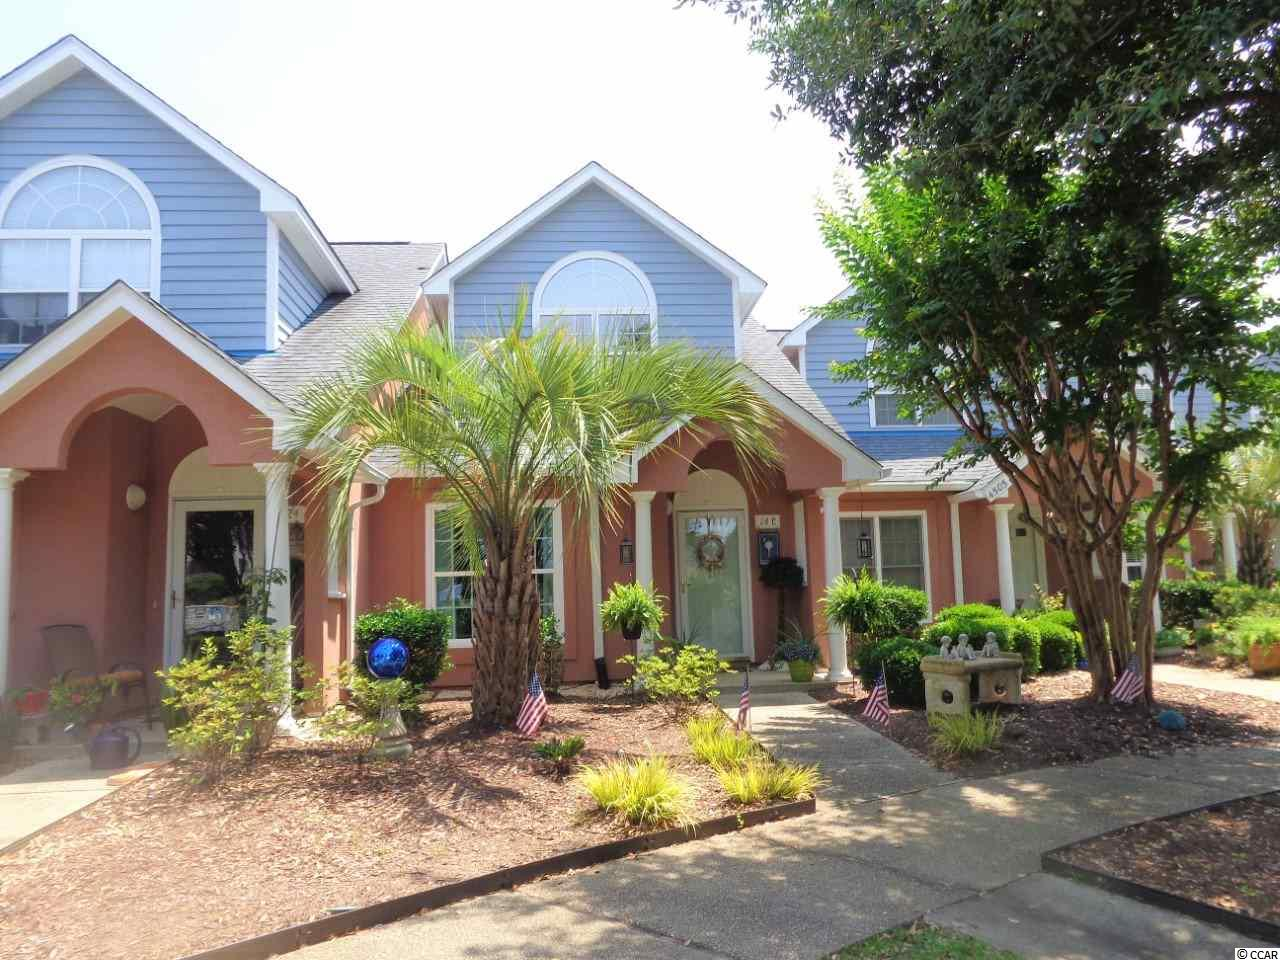 Amazing condo in sought after Lighthouse Pointe community on the intracoastal waterway. Owner has made numerous improvements, Trane variable speed HVAC (2012) newer water heater with softener, all switch plates are updated, electric panel box replaced, appliances are newer,Lovely granite counters and breakfast bar with updated backsplash, updated cabinet. Windows (including skylights) have heat/glare resistant coatings (even adds extra protection to storm breakage. Beautiful builtin cabinets in hall for great extra storage, Recently painted,  Extremely well cared for and Very clean! Master bedroom is massive with room for desk, bedroom furniture plus exercise machine! Spacious deck on back with good storage &  peaceful views of water feature  and lighthouse,  You can enjoy great walks around boardwalk that surrounds Coquina Harbor or watch the many boats in and our of the marina.  Great dining, golf, shopping and even the Ocean are close by!